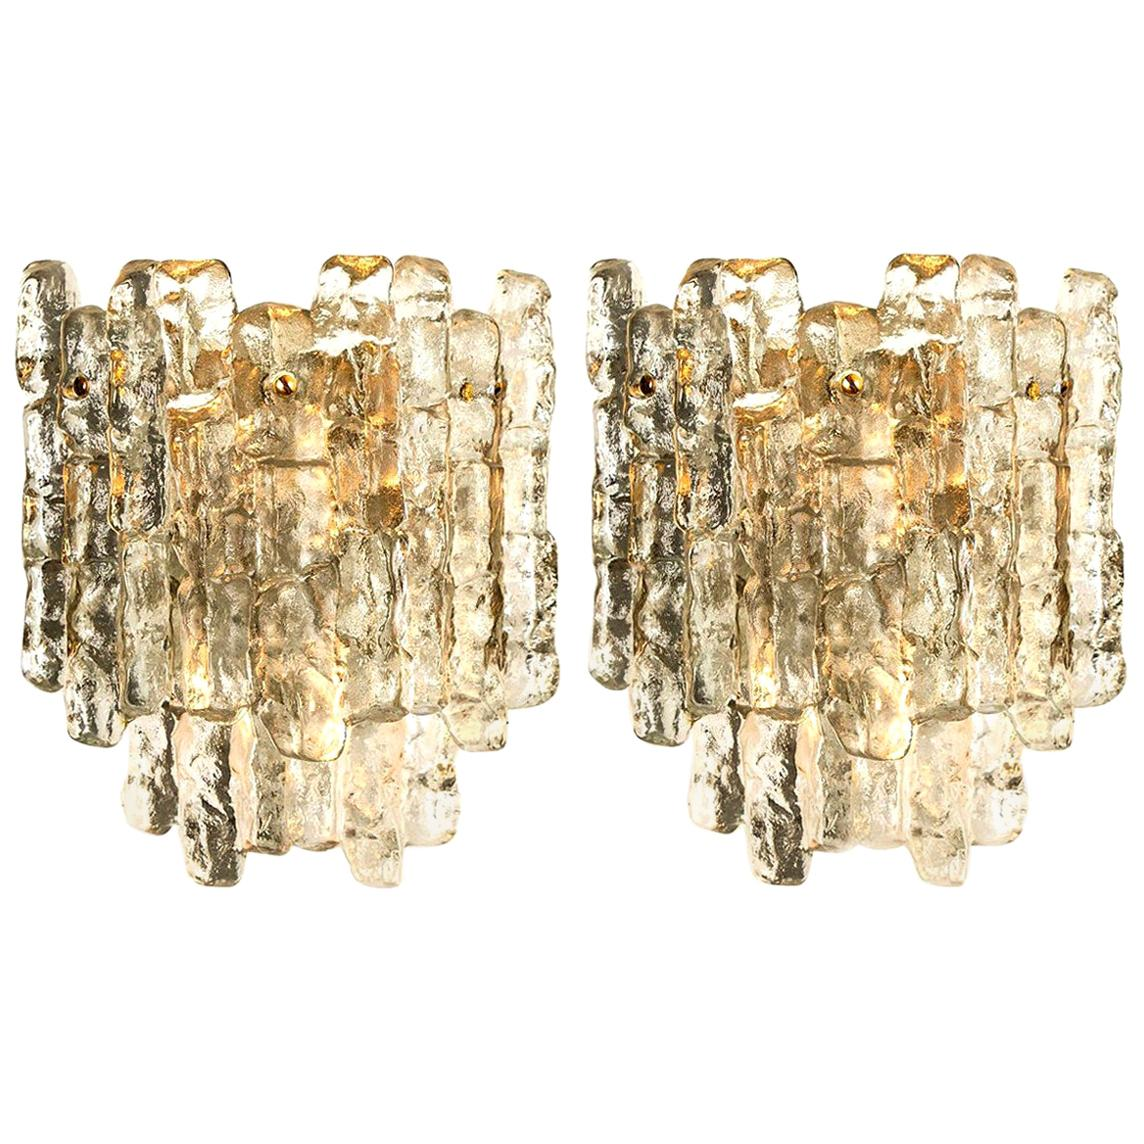 Pair of Kalmar Ice Glass Wall Sconces by J.T. Kalmar, Austria, 1970s